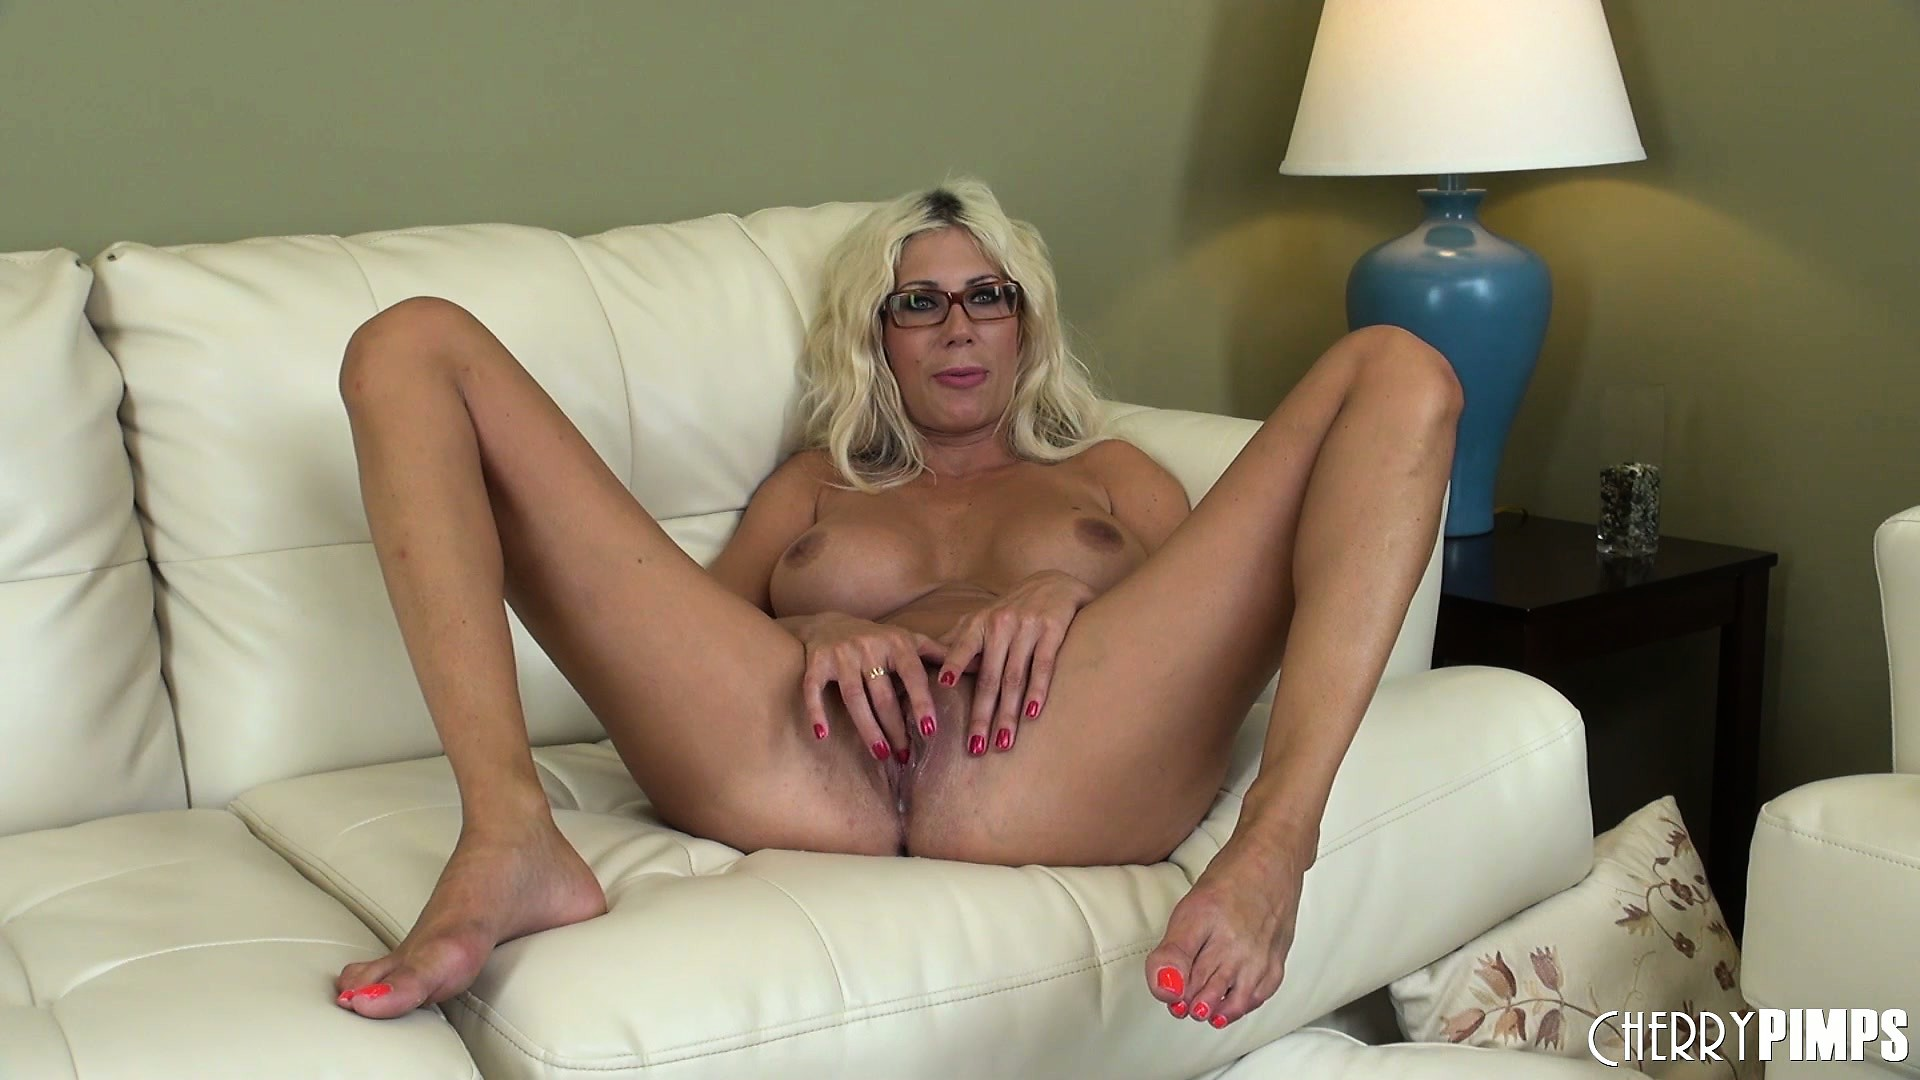 Porno Video of Puma Loves How A Dildo In Her Peach And A Vibrator On Her Clit Make Her Body Feel